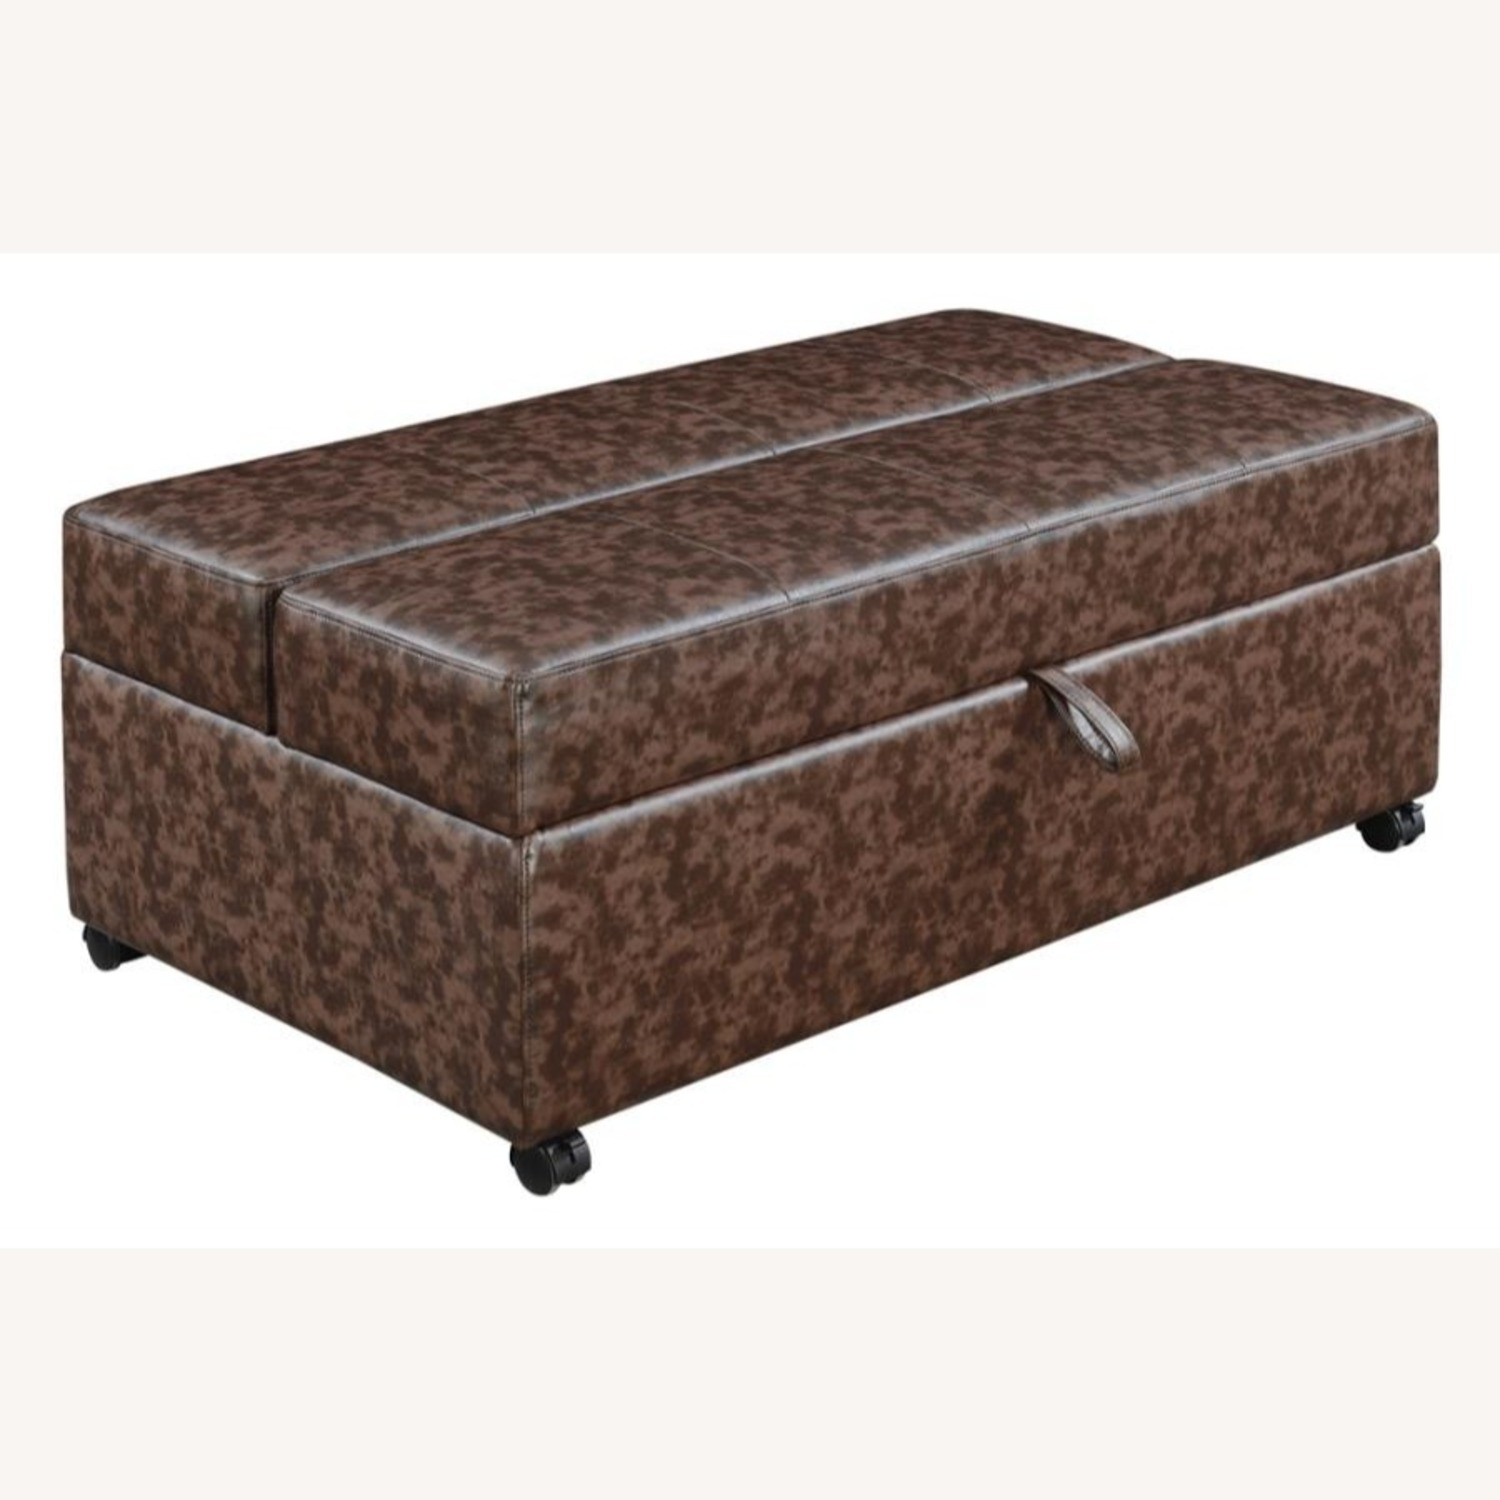 Multi-Functional Ottoman In Dark Brown Leatherette - image-0